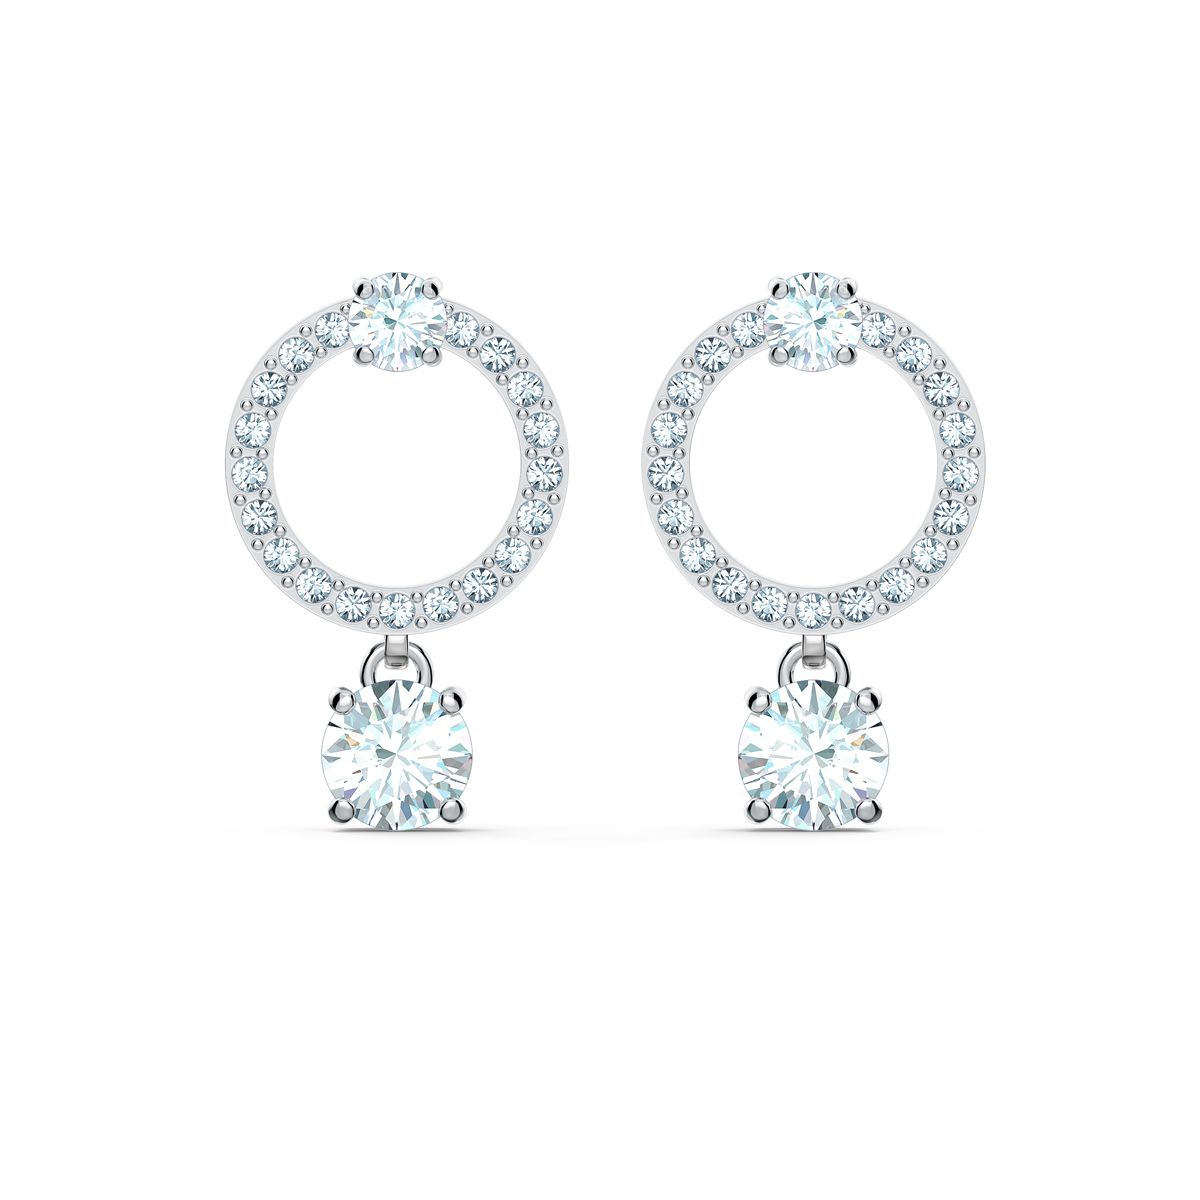 Swarovski Attract Circle Pierced Earrings, White, Rhodium Plated